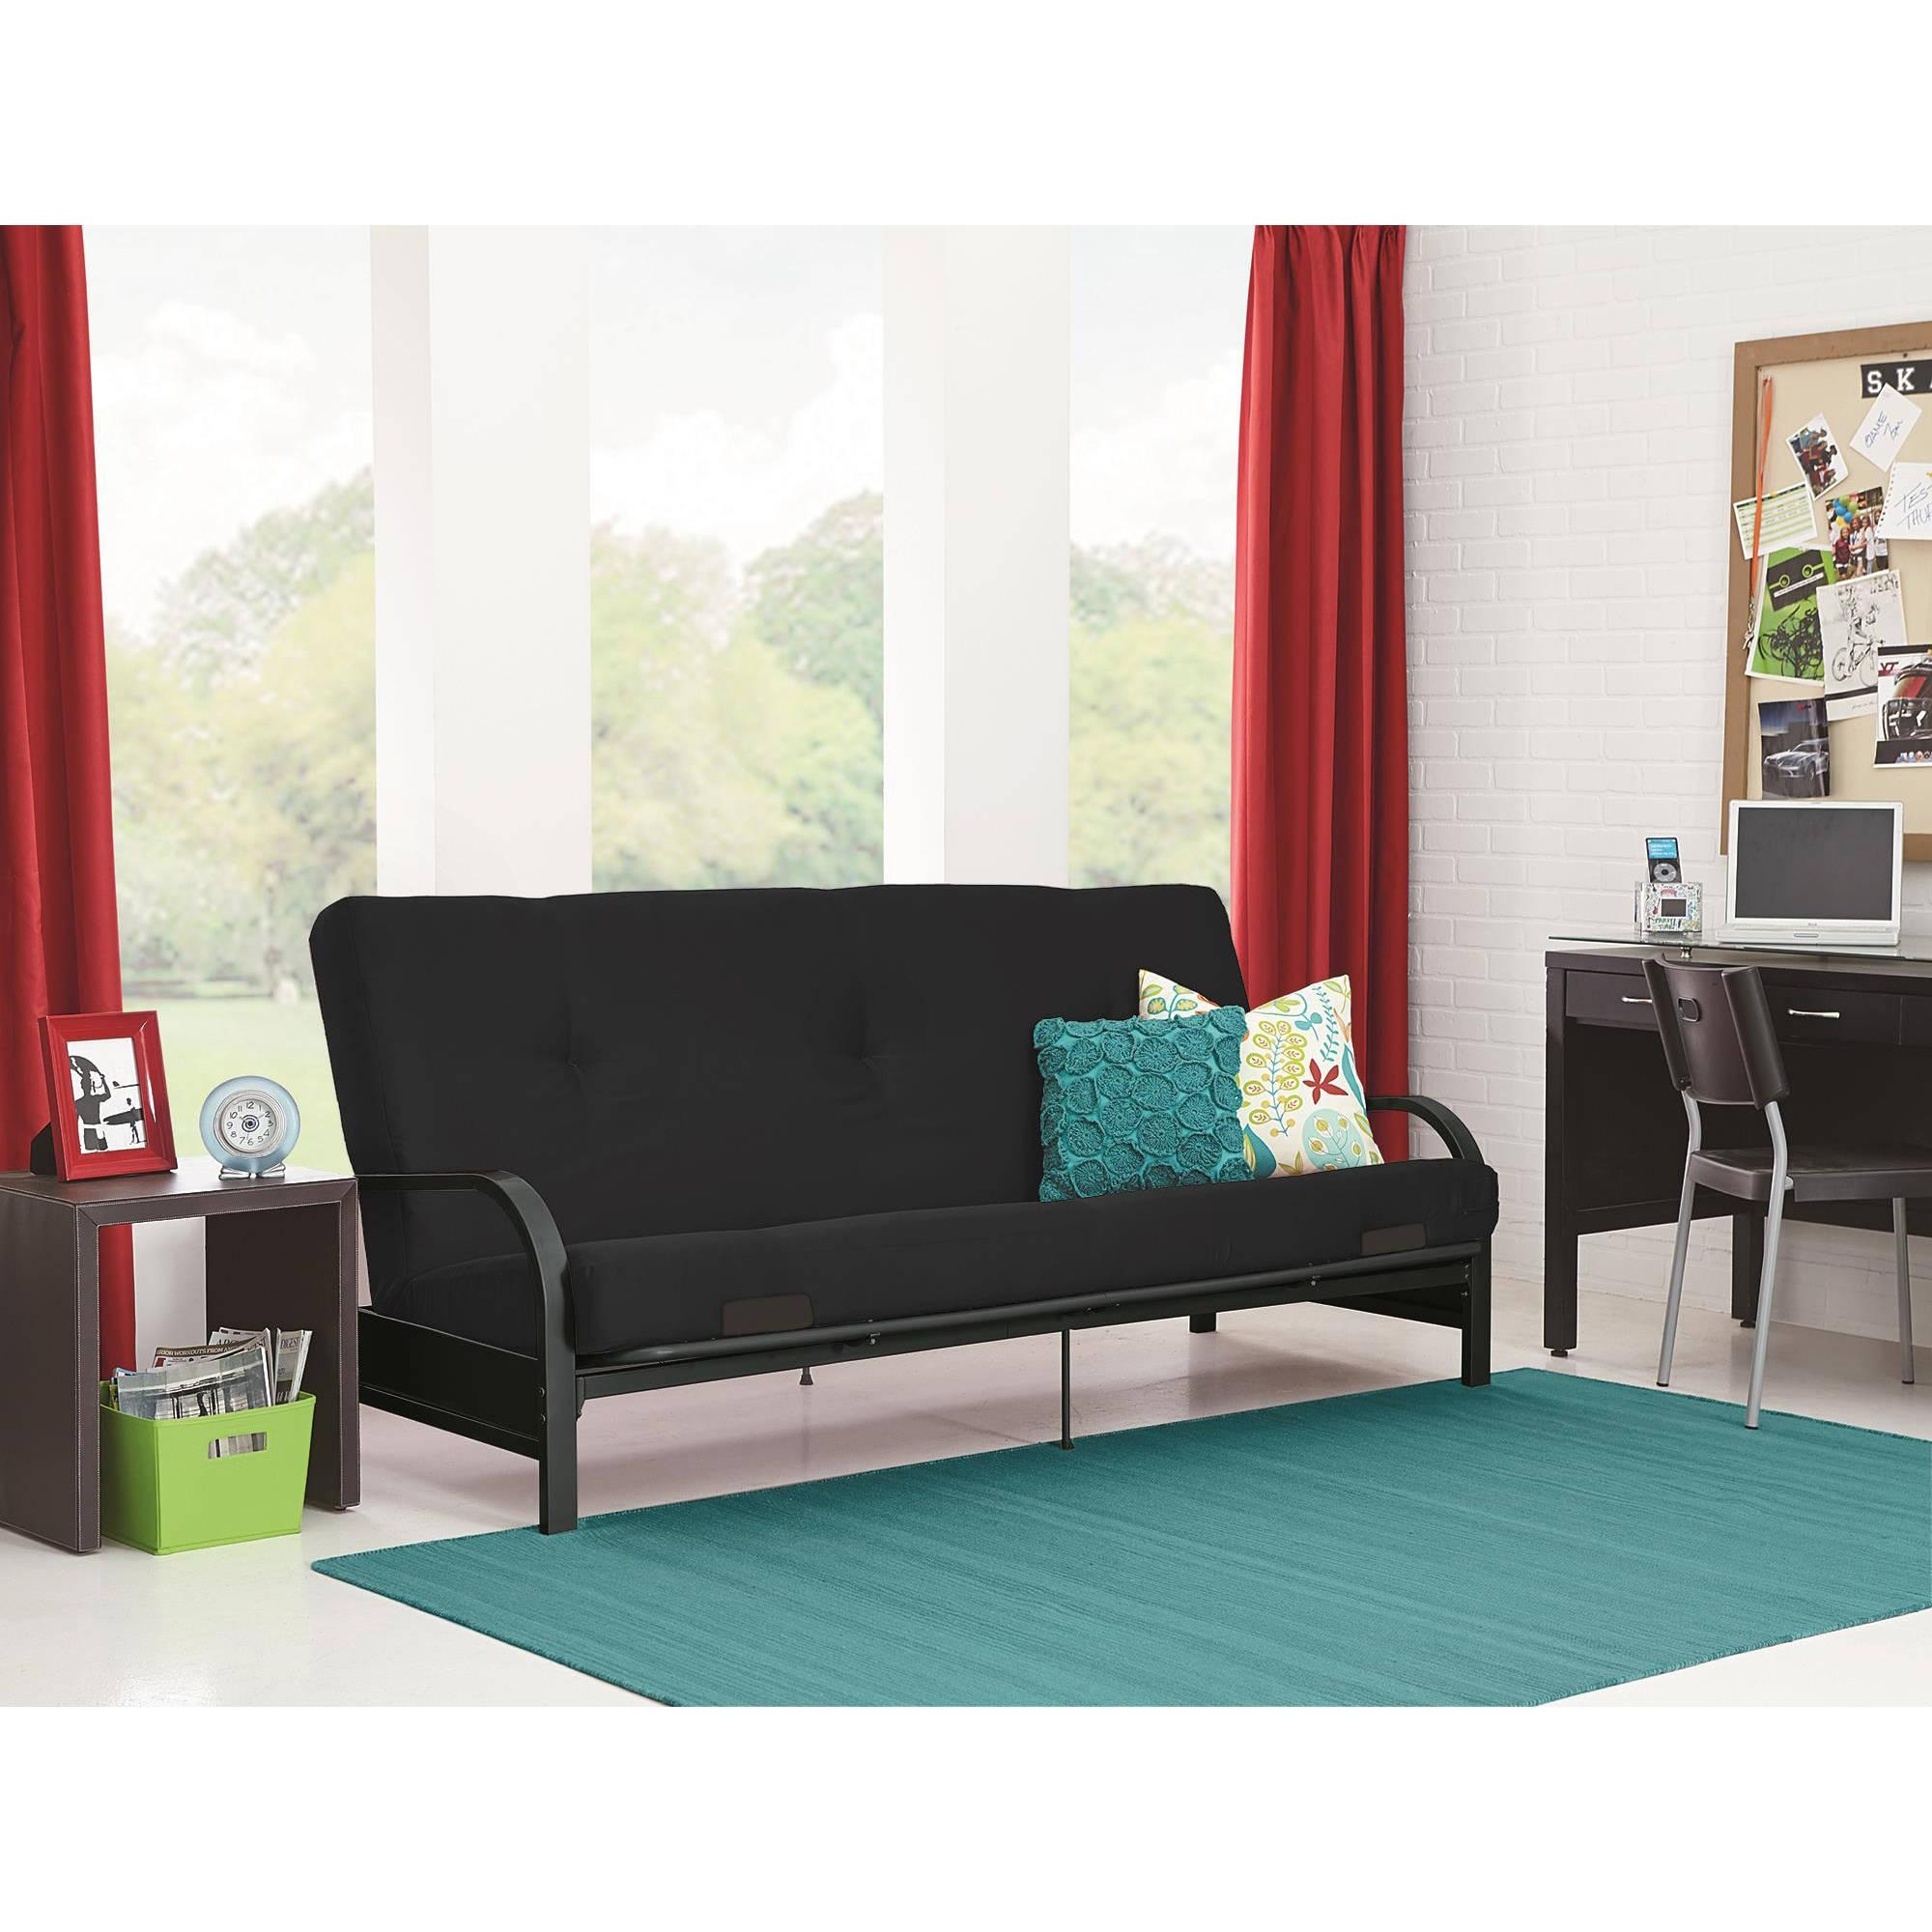 Futons, Futon Beds, Sofa Beds – Walmart With Regard To Small Black Futon Sofa Beds (Image 7 of 20)